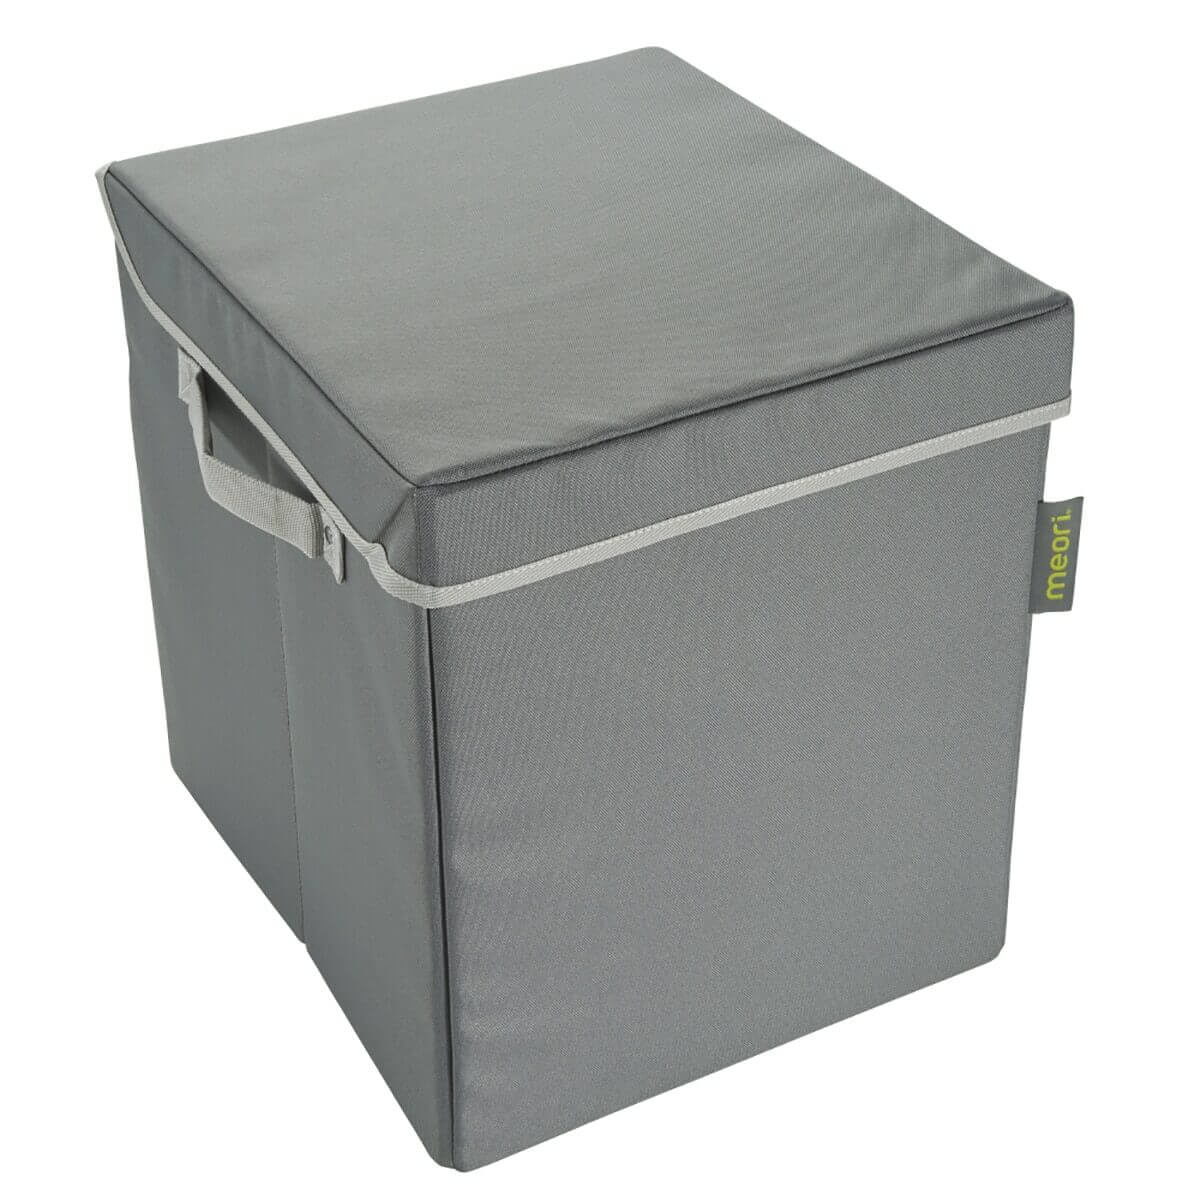 A100685 1 Storage Bin Small with Lid Granite Grey